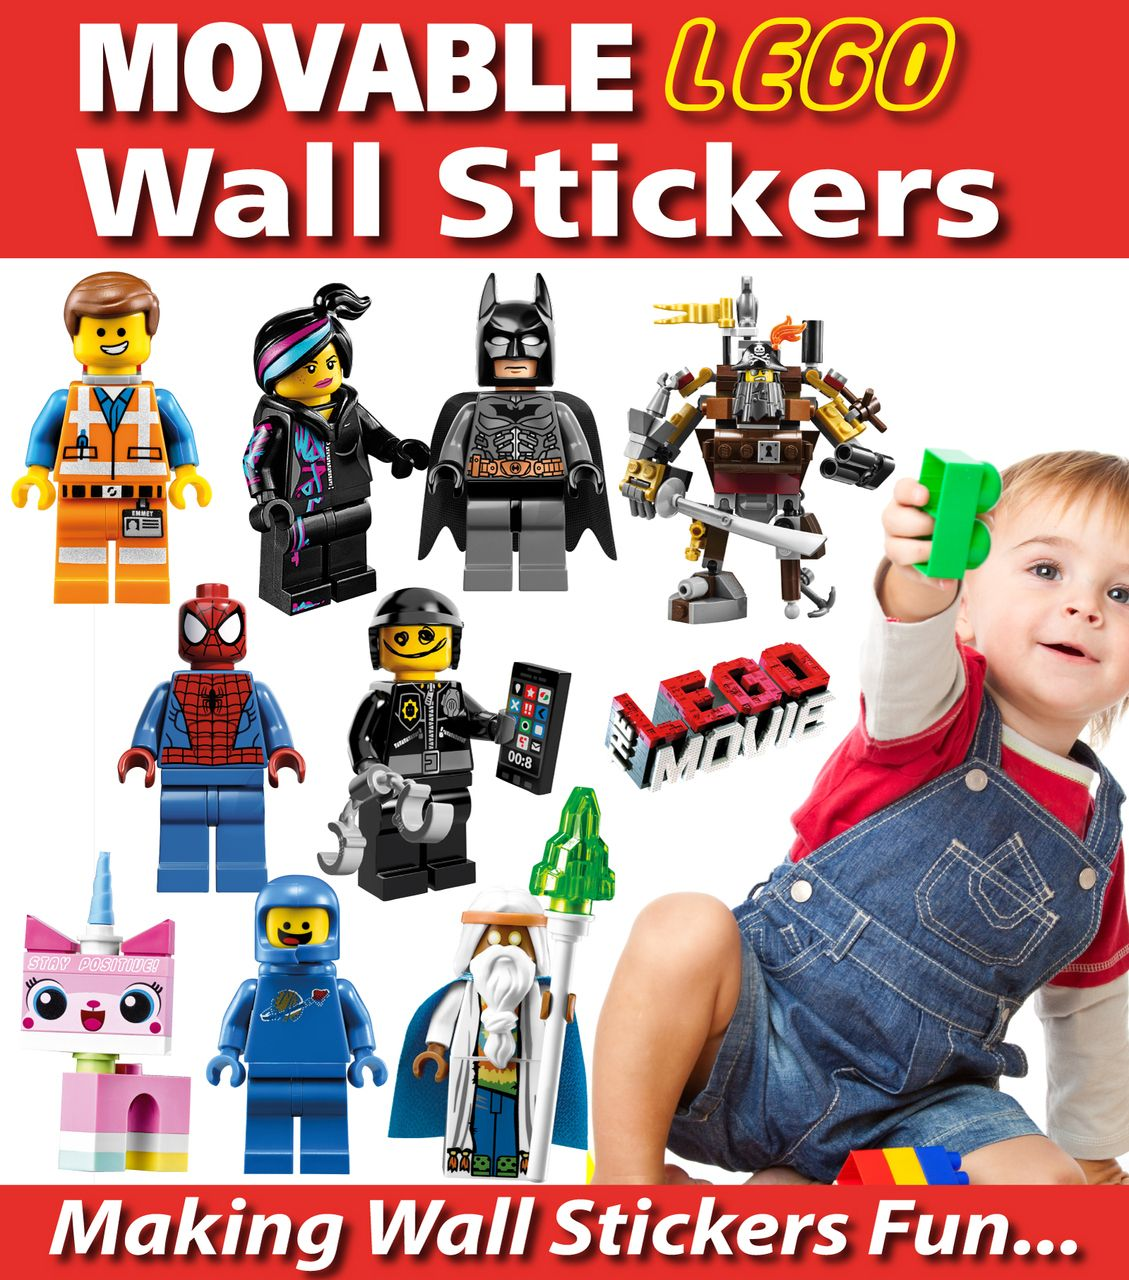 Lego Wall Stickers Totally Movable 995 Httpwww